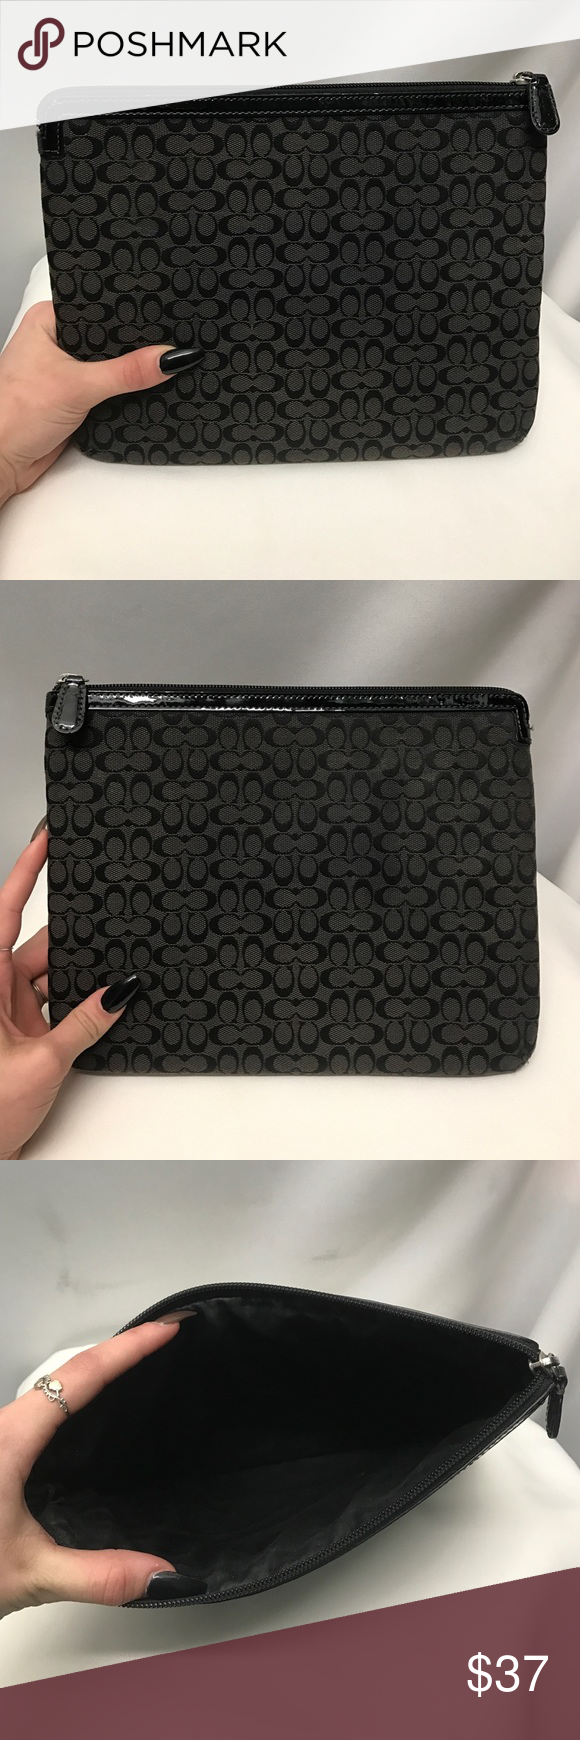 COACH ipad case Black cloth 'C' logo padded iPad case. Brand new condition. Coach Bags Laptop Bags